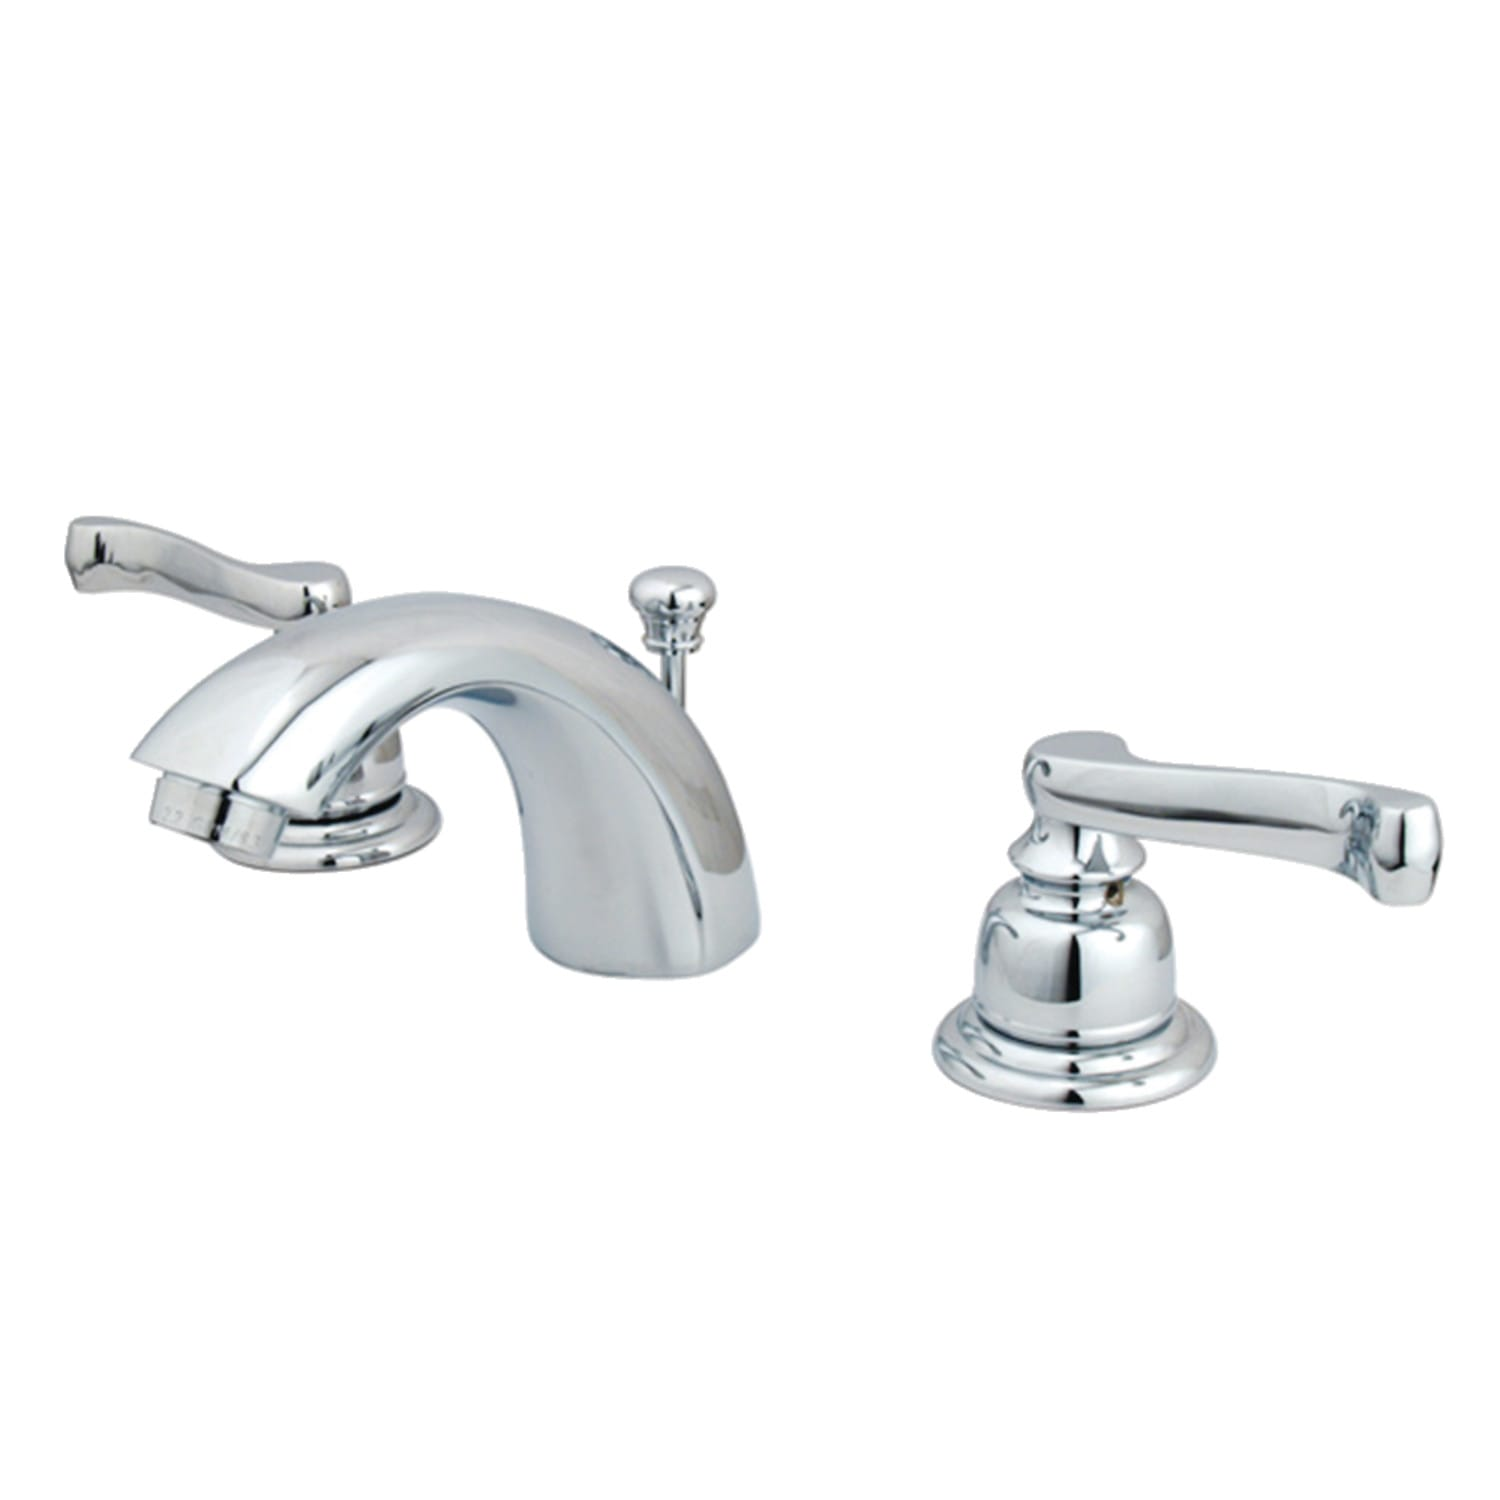 Kingston Brass Kb952fl Polished Brass Royale 1 2 Gpm Widespread Bathroom Faucet With Pop Up Drain Assembly Faucet Com